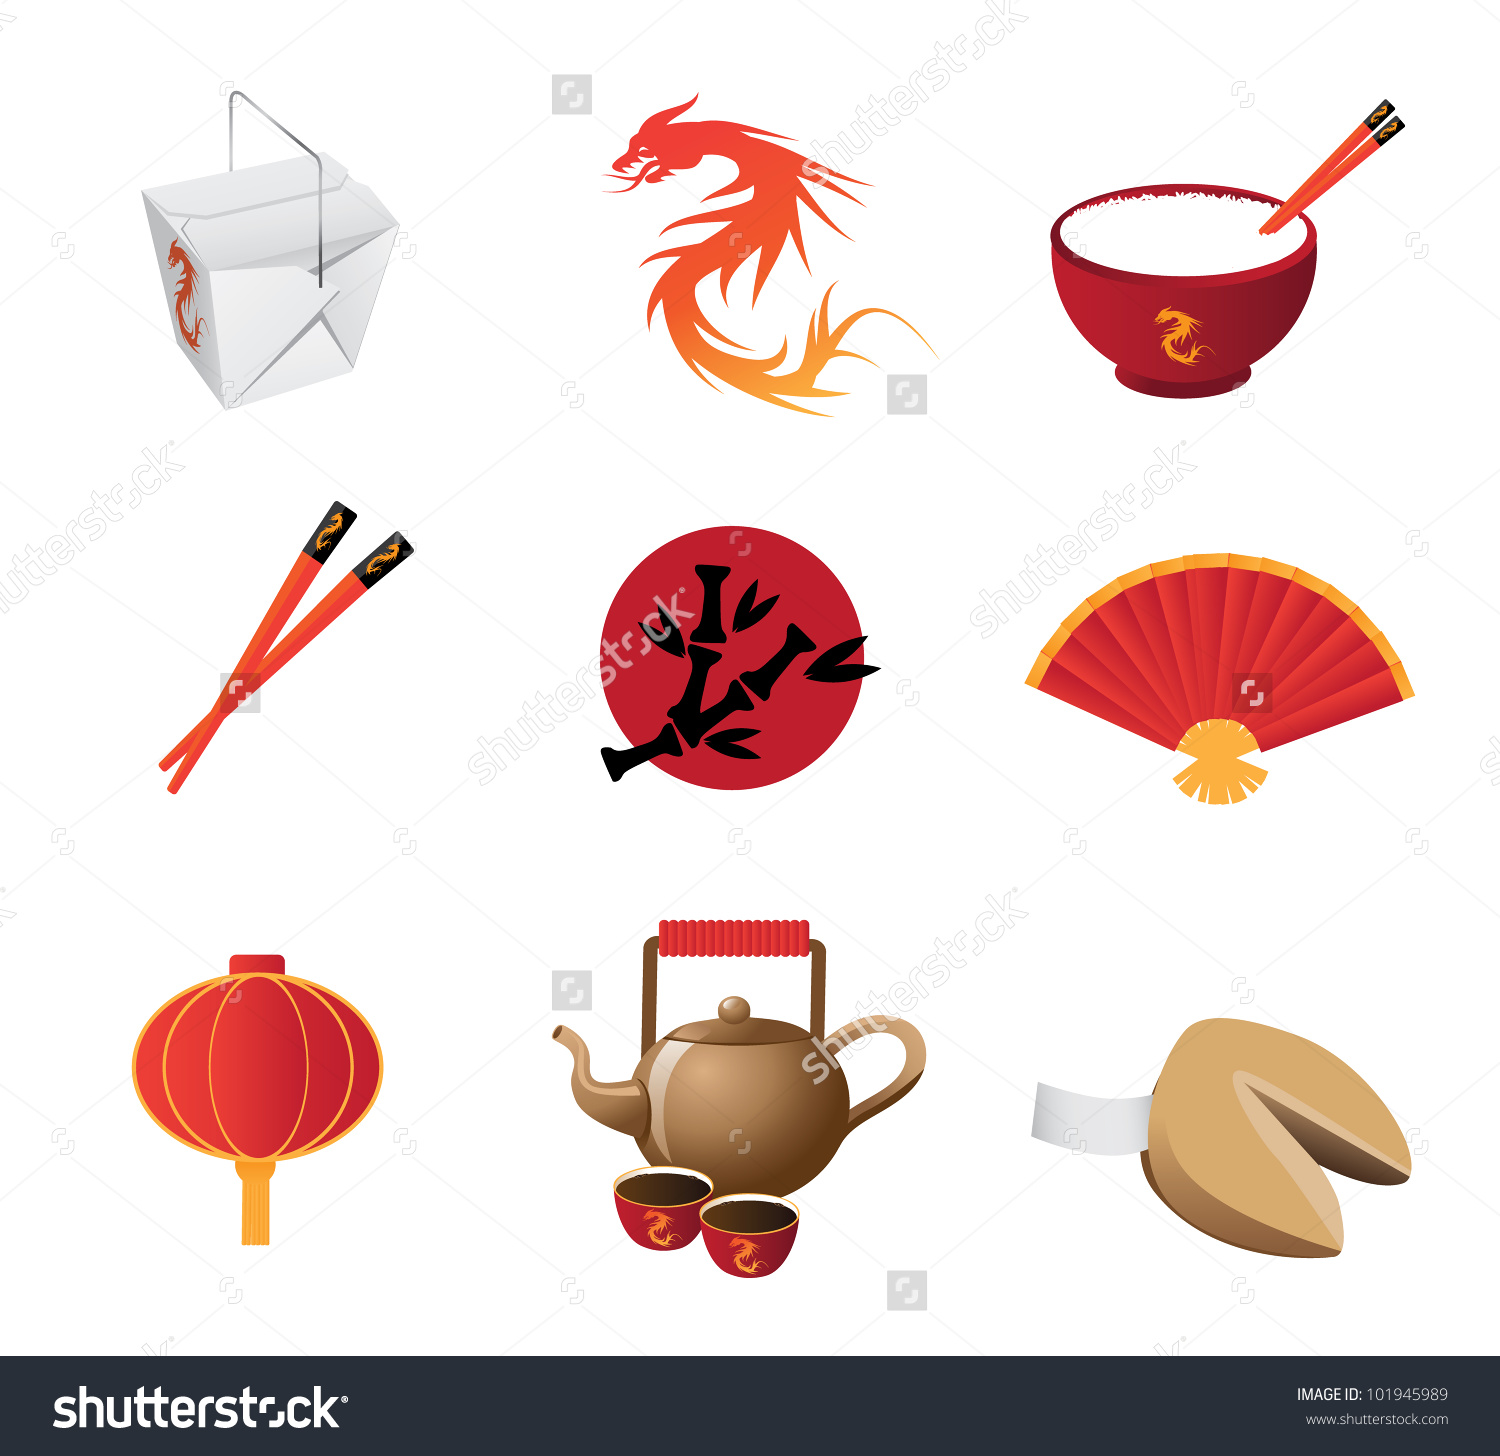 no chinese food clipart - Clipground